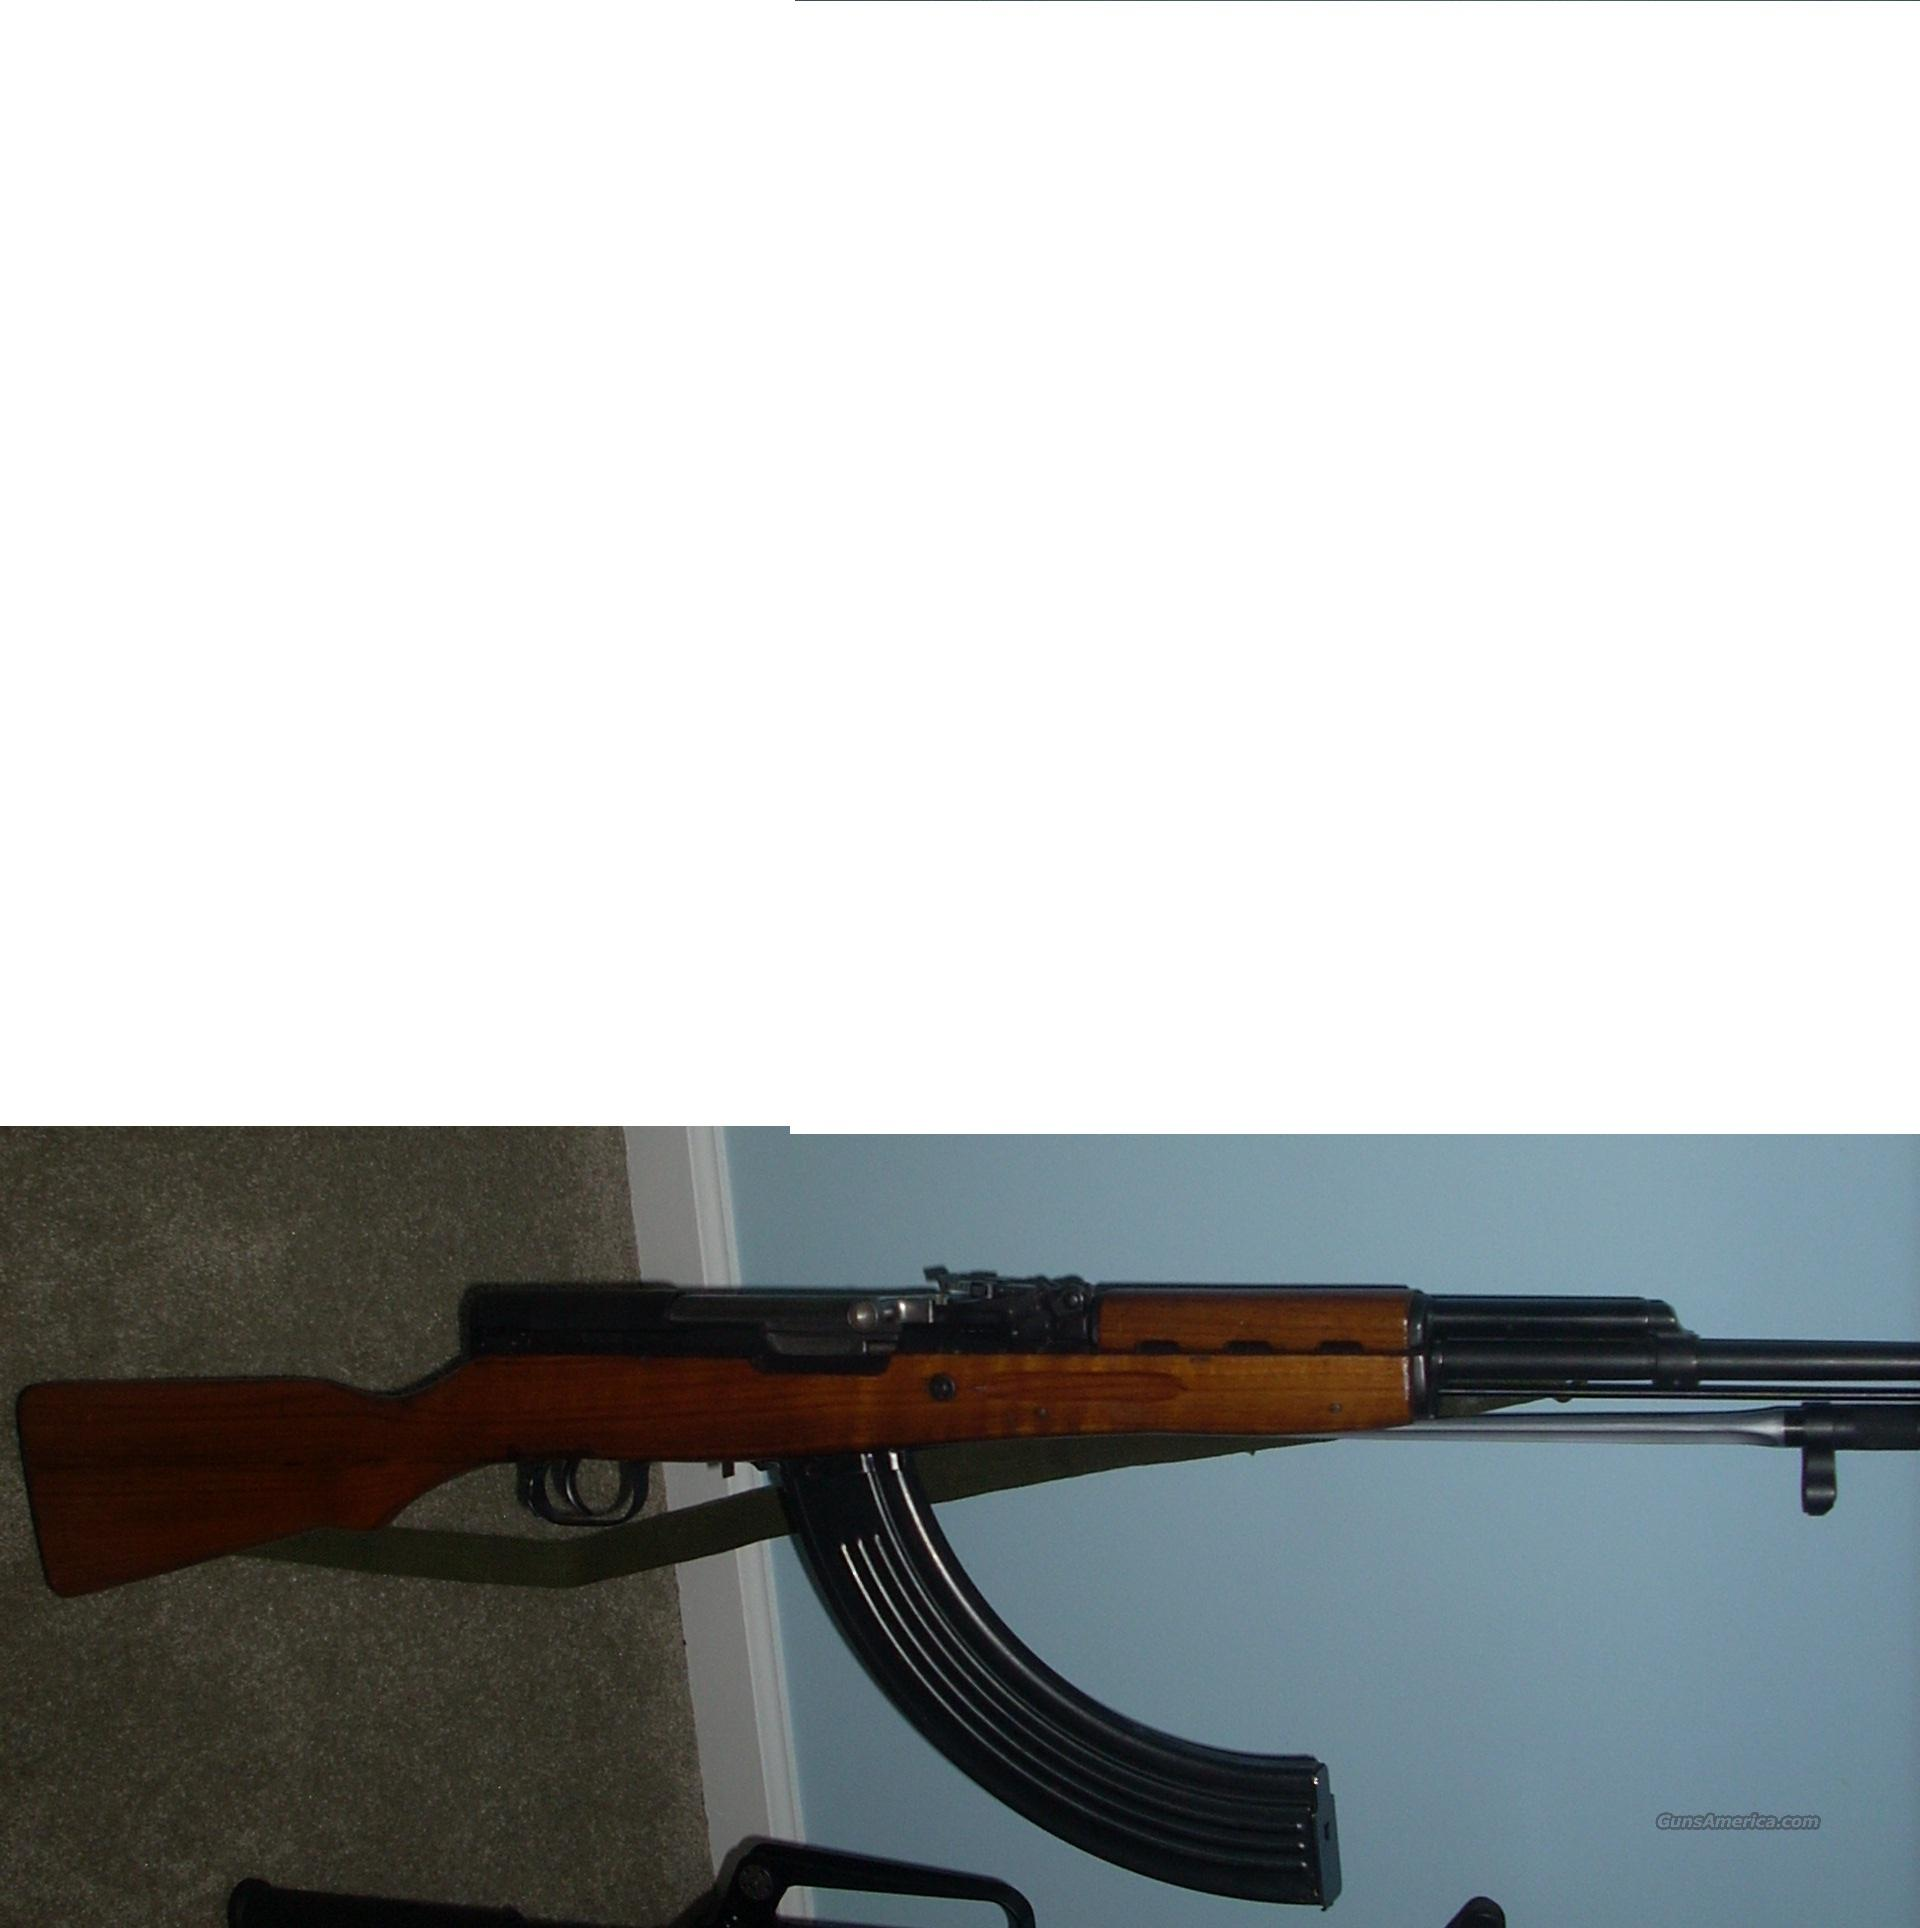 NORINCO SKS 7.62 X 39  Guns > Rifles > Norinco Rifles